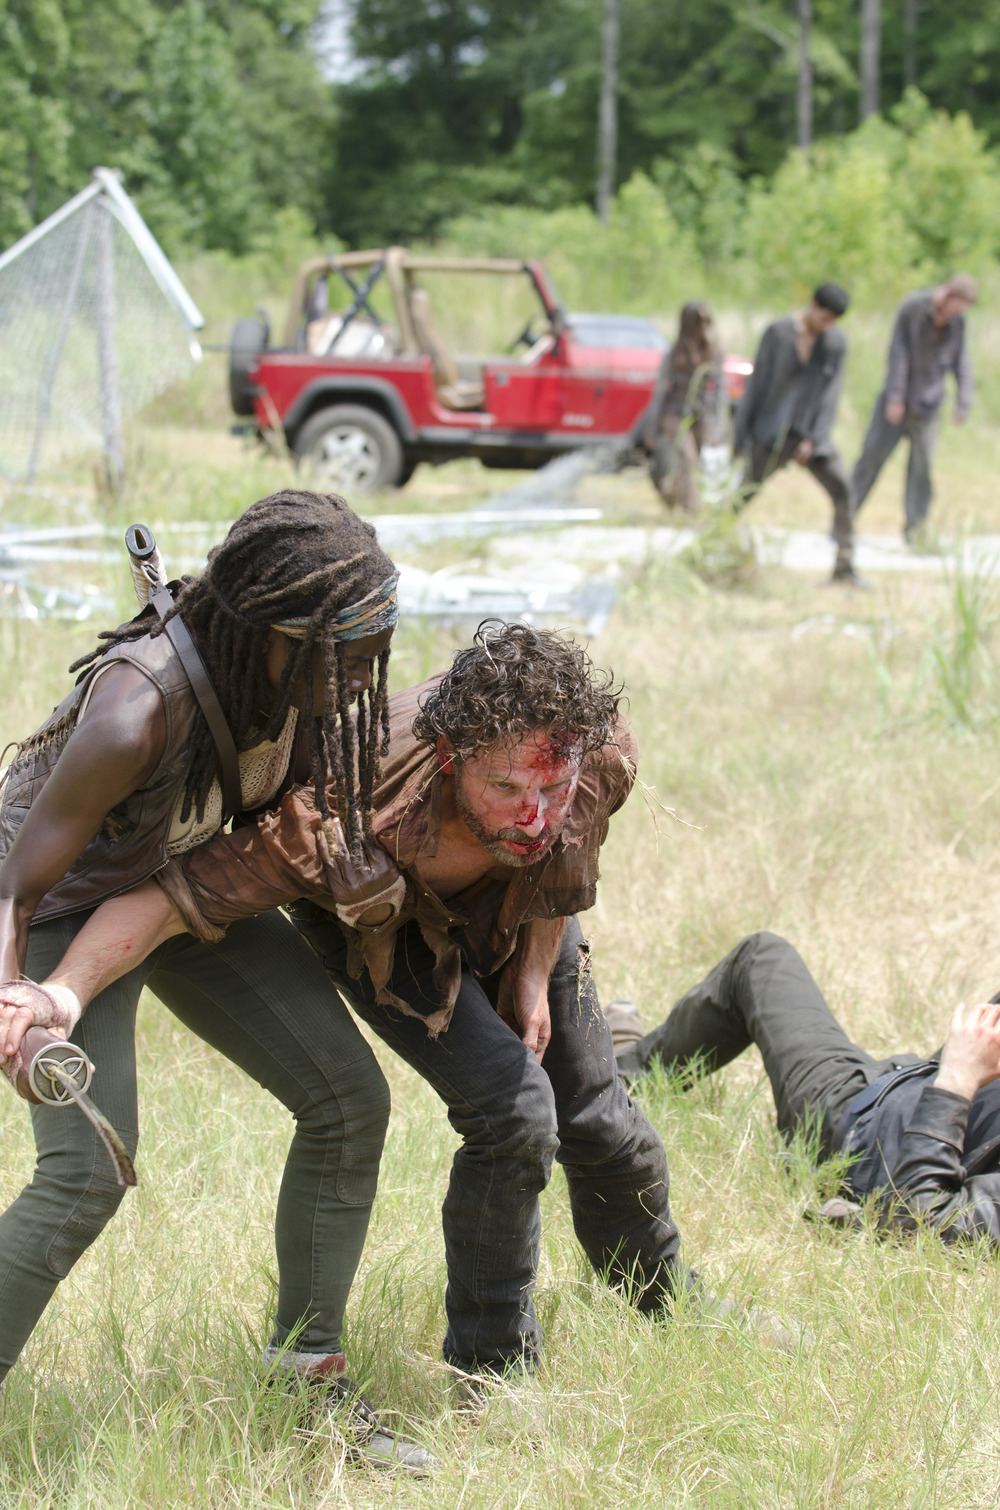 The Walking Dead Season 4: What Did You Think of the First Half? (POLL)